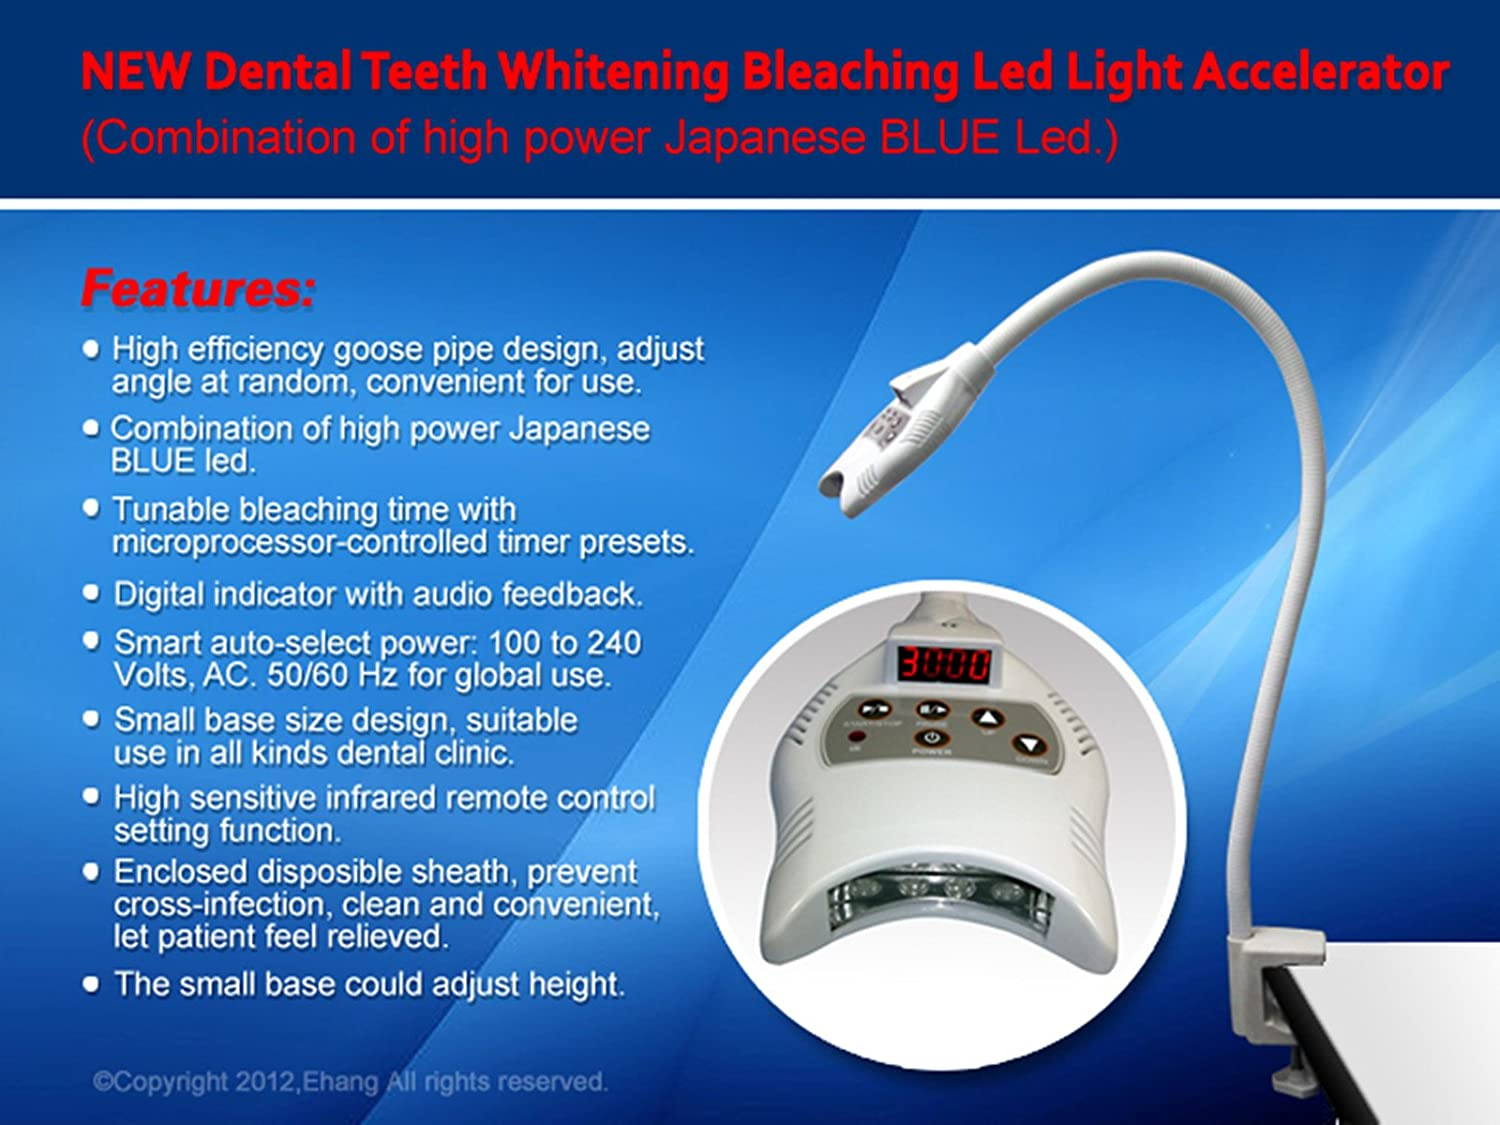 JIAHAO New Dental Teeth Whitening Bleaching LED UV Light Lamp Accelerator with Arm Holder- High Power Japanese Blue Led -HK999 715J8r27HOL._SL1500_